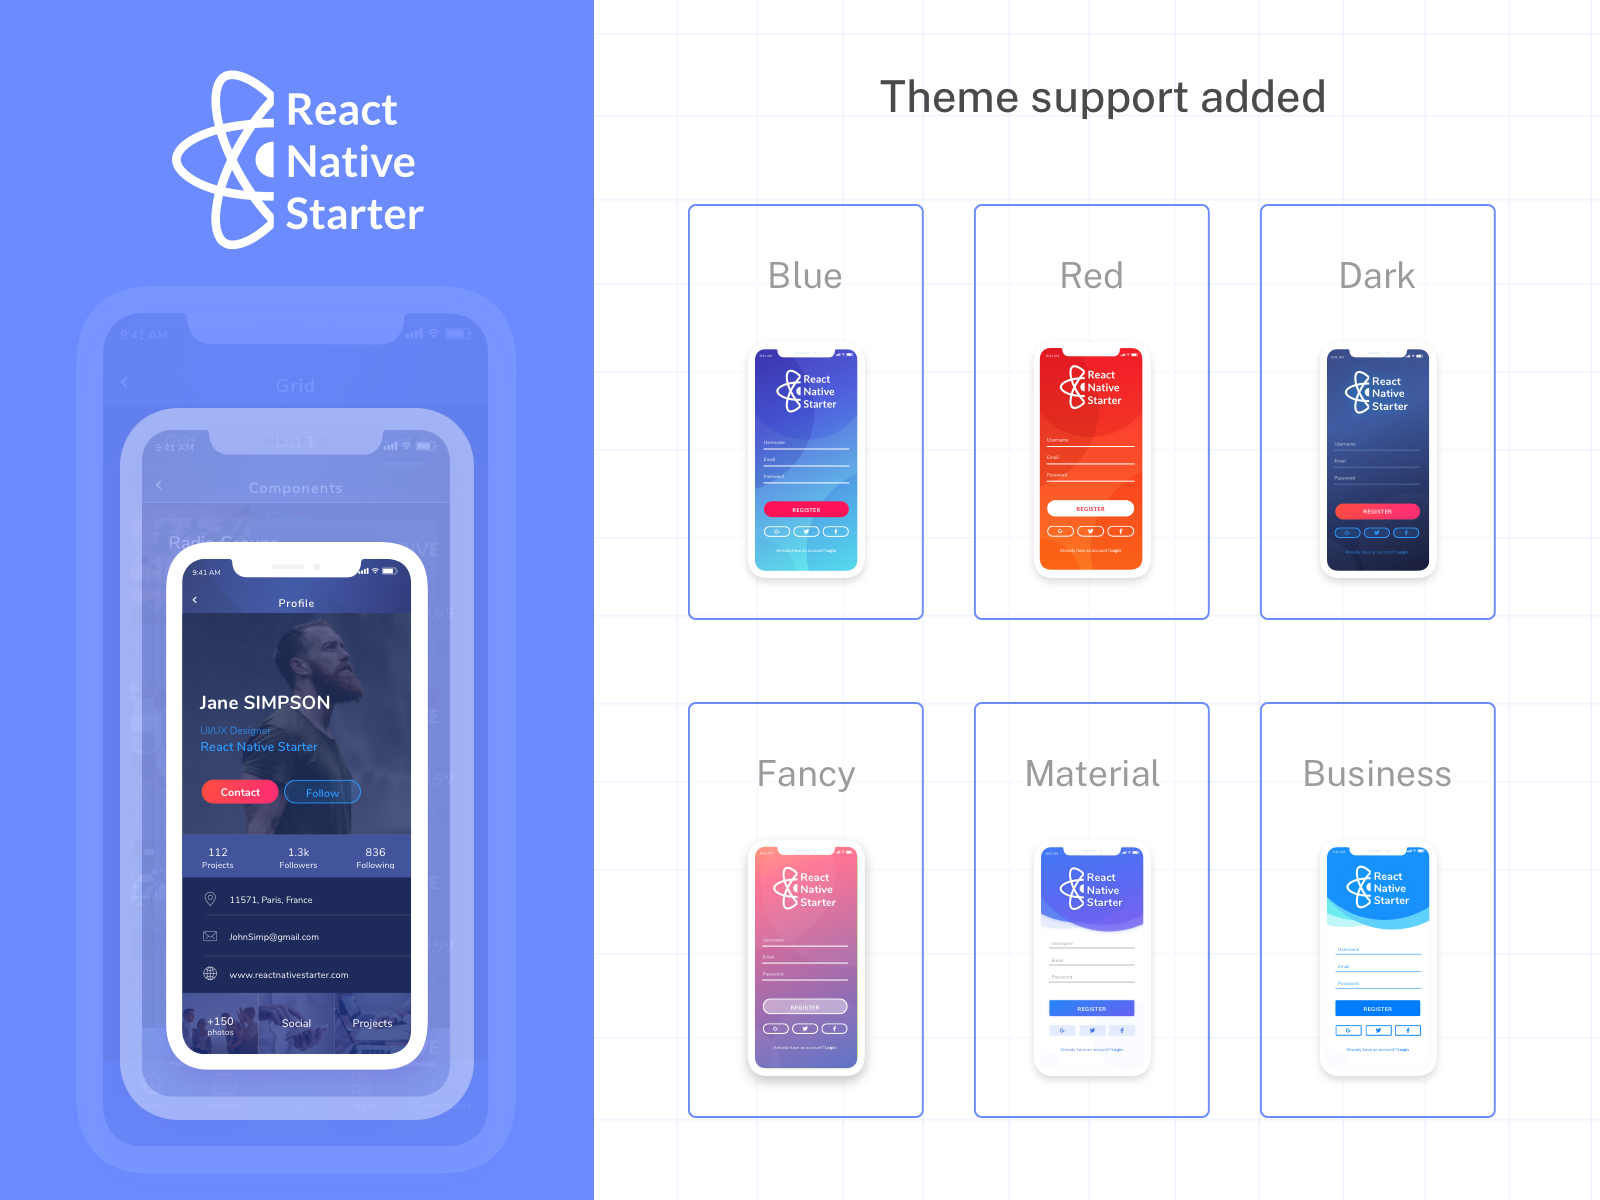 React Native Starter Update. New Color Themes Added